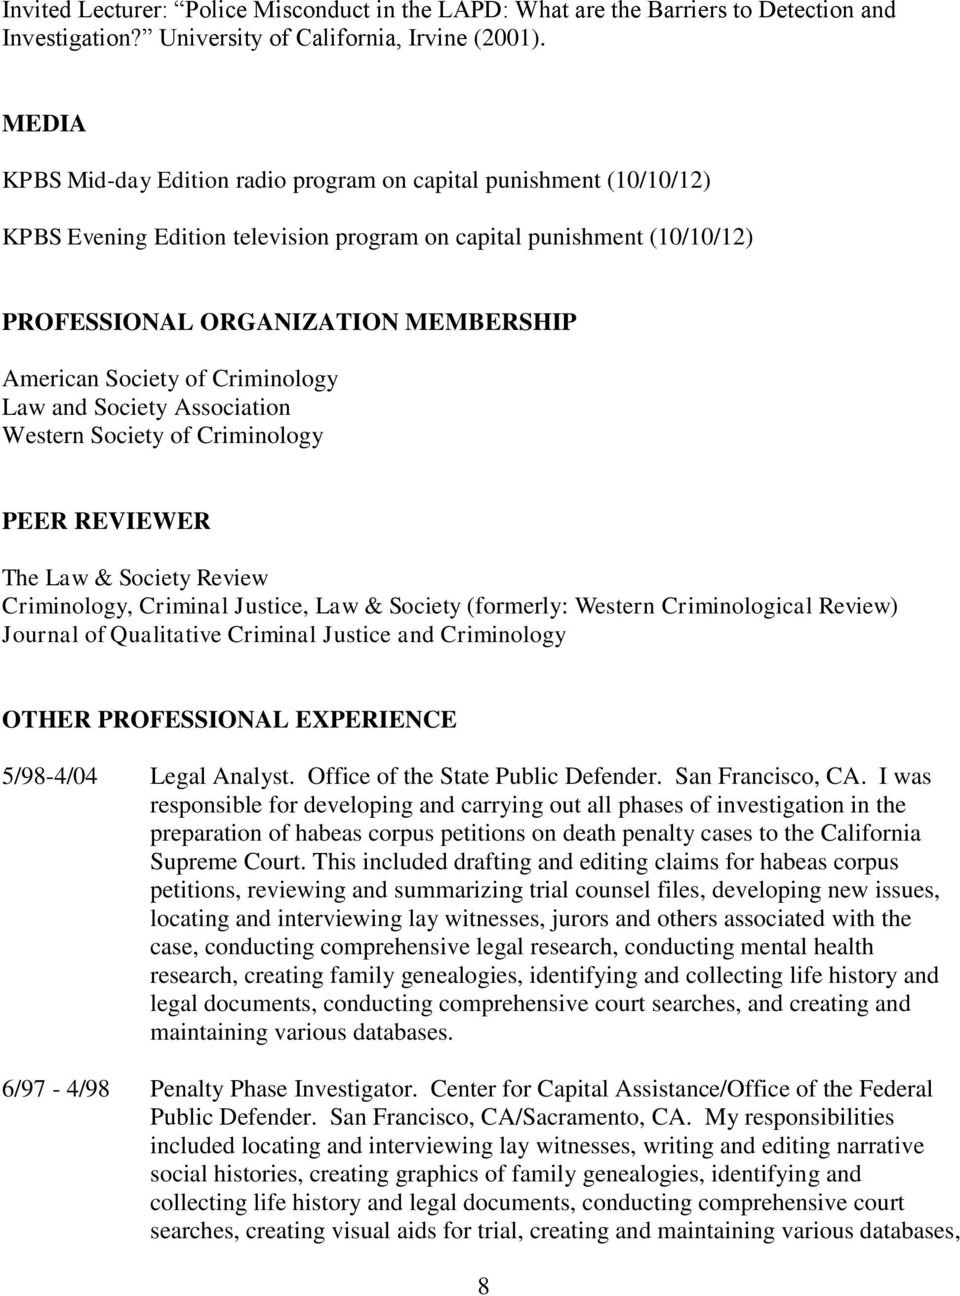 Society of Criminology Law and Society Association Western Society of Criminology PEER REVIEWER The Law & Society Review Criminology, Criminal Justice, Law & Society (formerly: Western Criminological